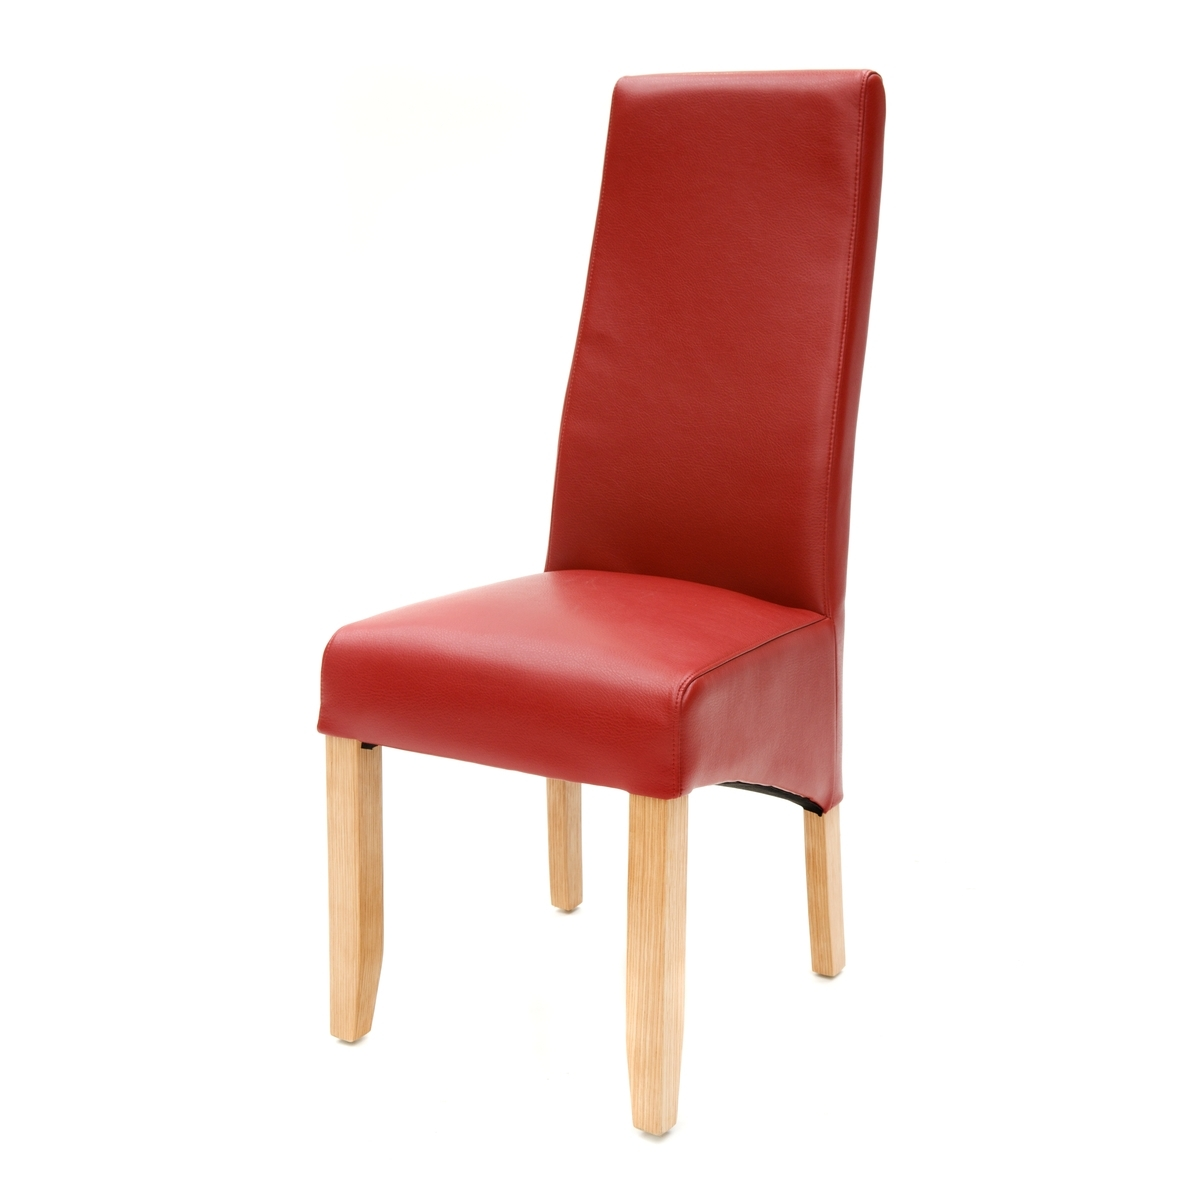 Preferred Wavey Dining Chair – Scs Endurance Mirage Red – Willis & Gambier Outlet Pertaining To Scs Dining Furniture (View 6 of 25)